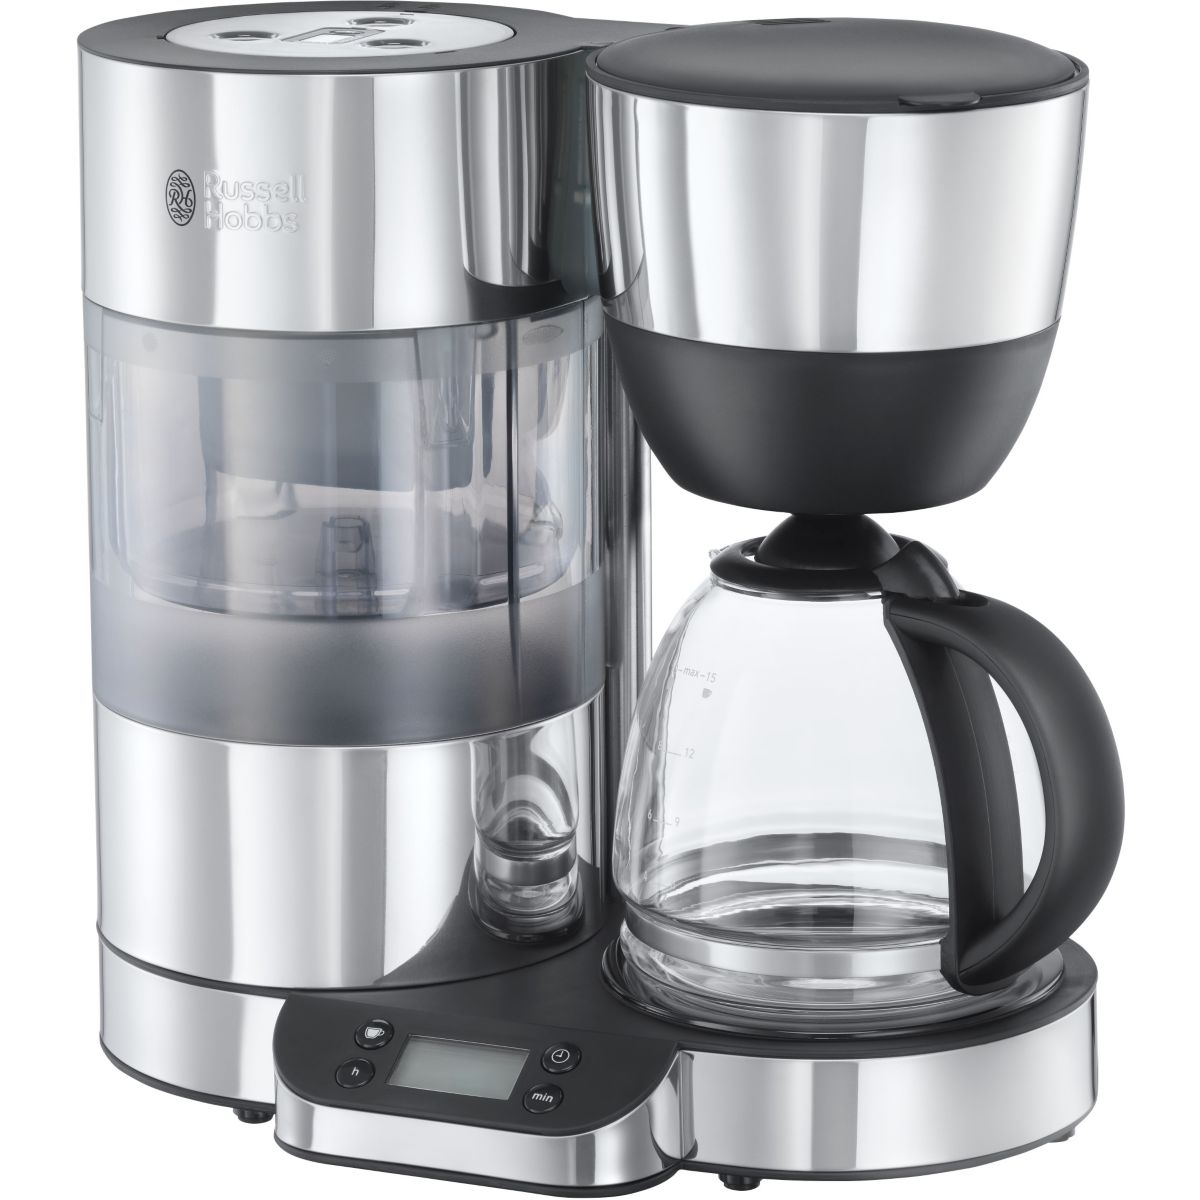 Cafetière filtre RUSSELL HOBBS Clarity 20770-56